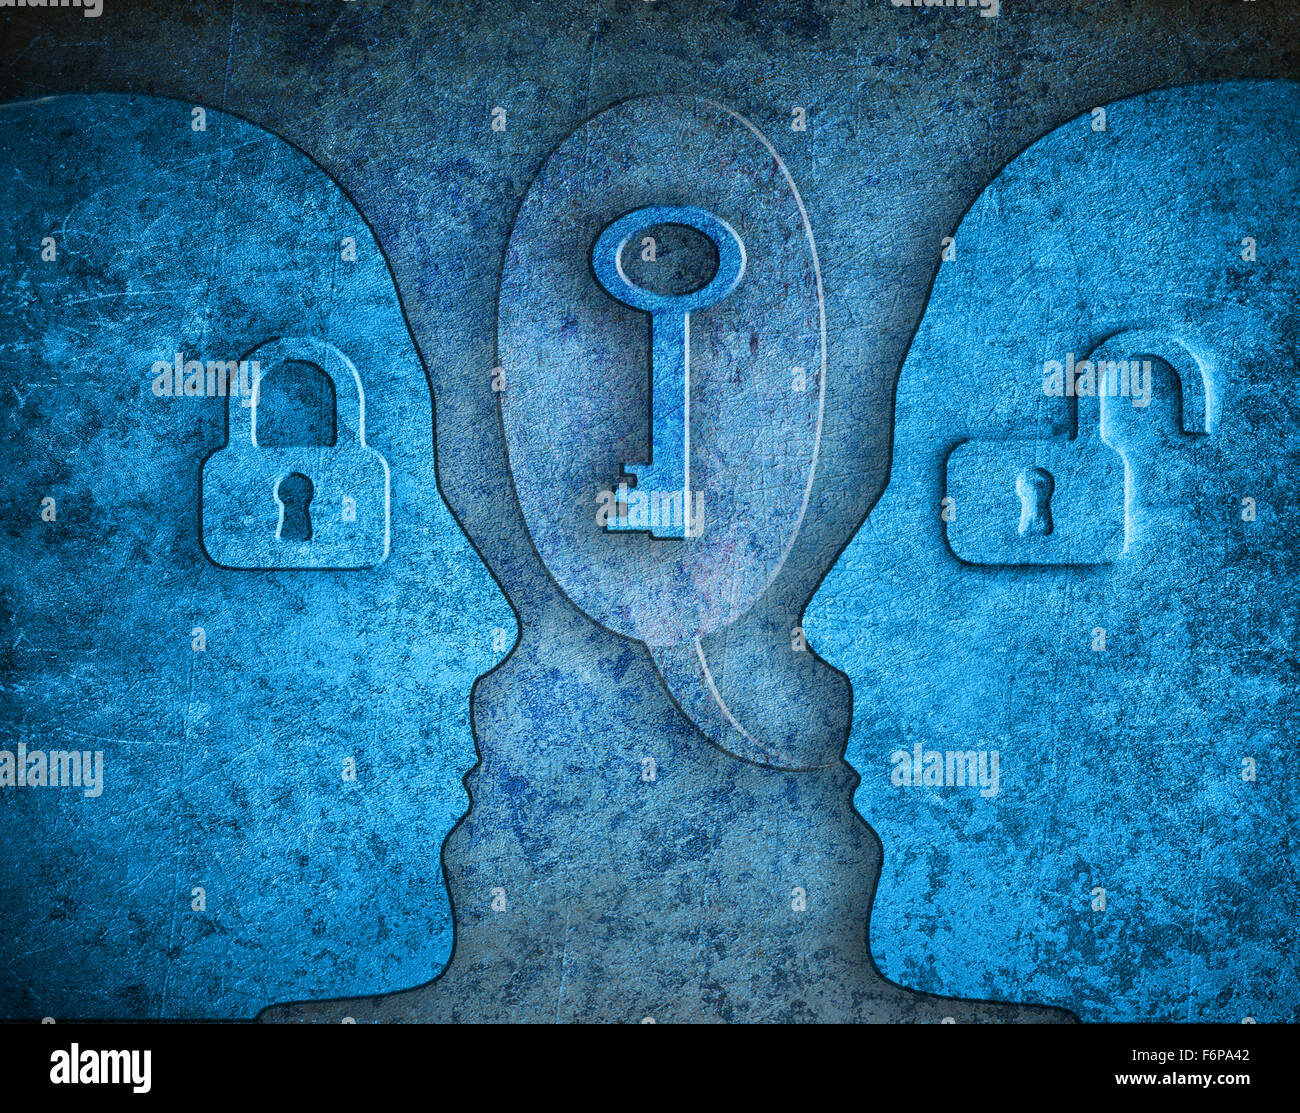 knowledge digital illustration concept with human silhouette padlocks and kay - Stock Image